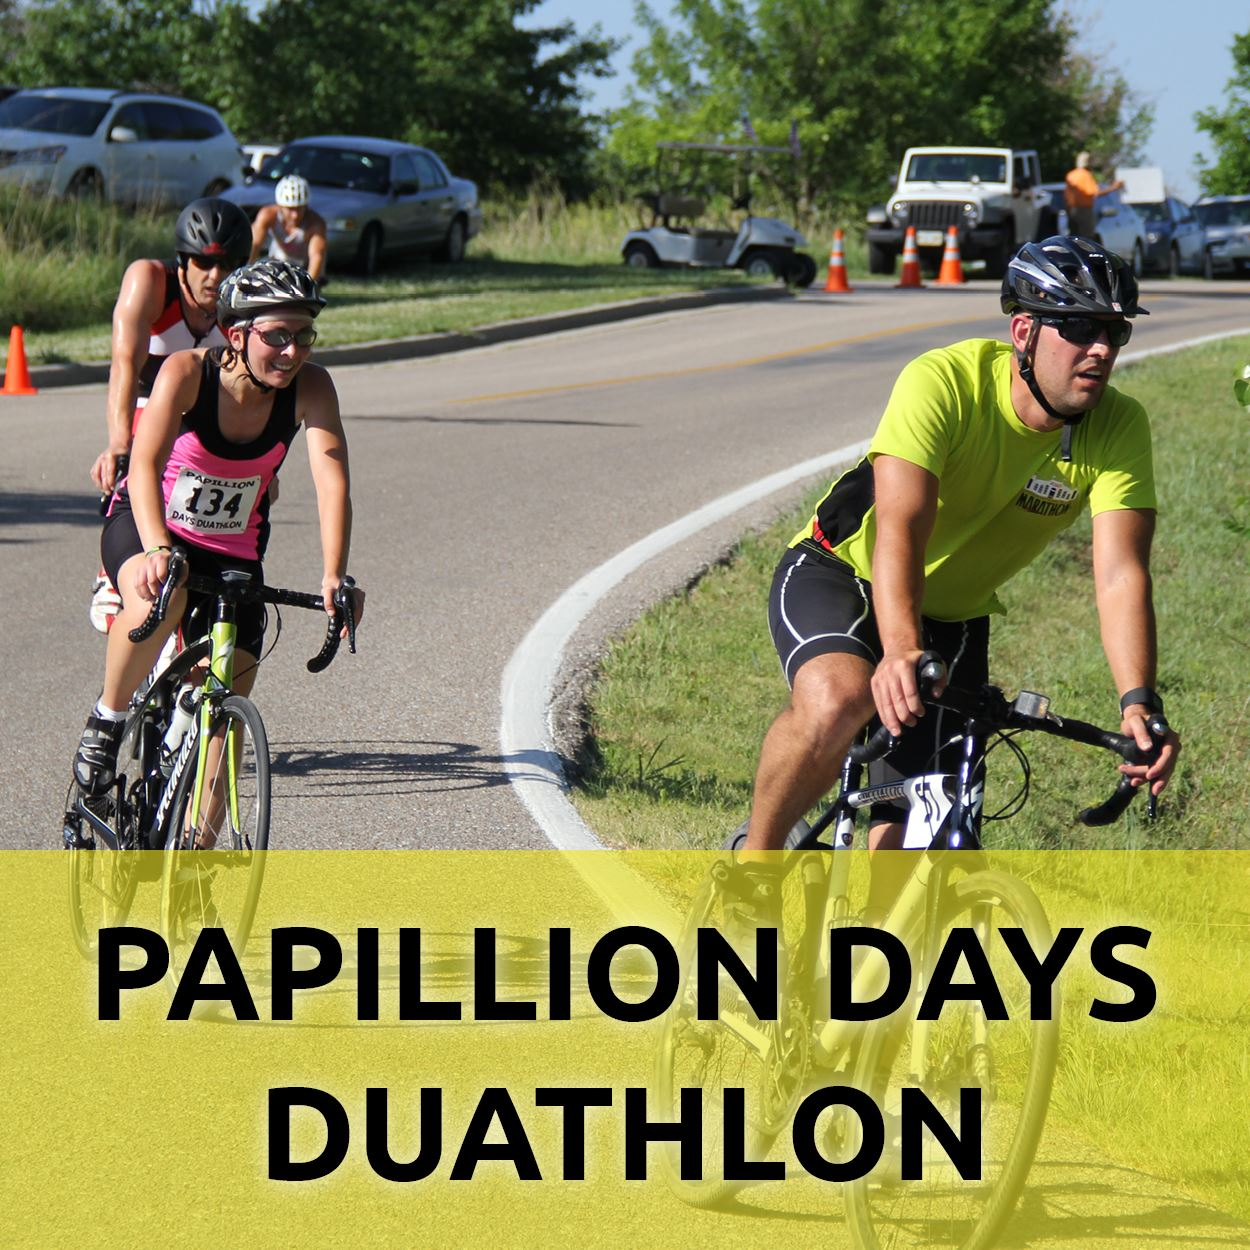 Papillion Days Duathlon